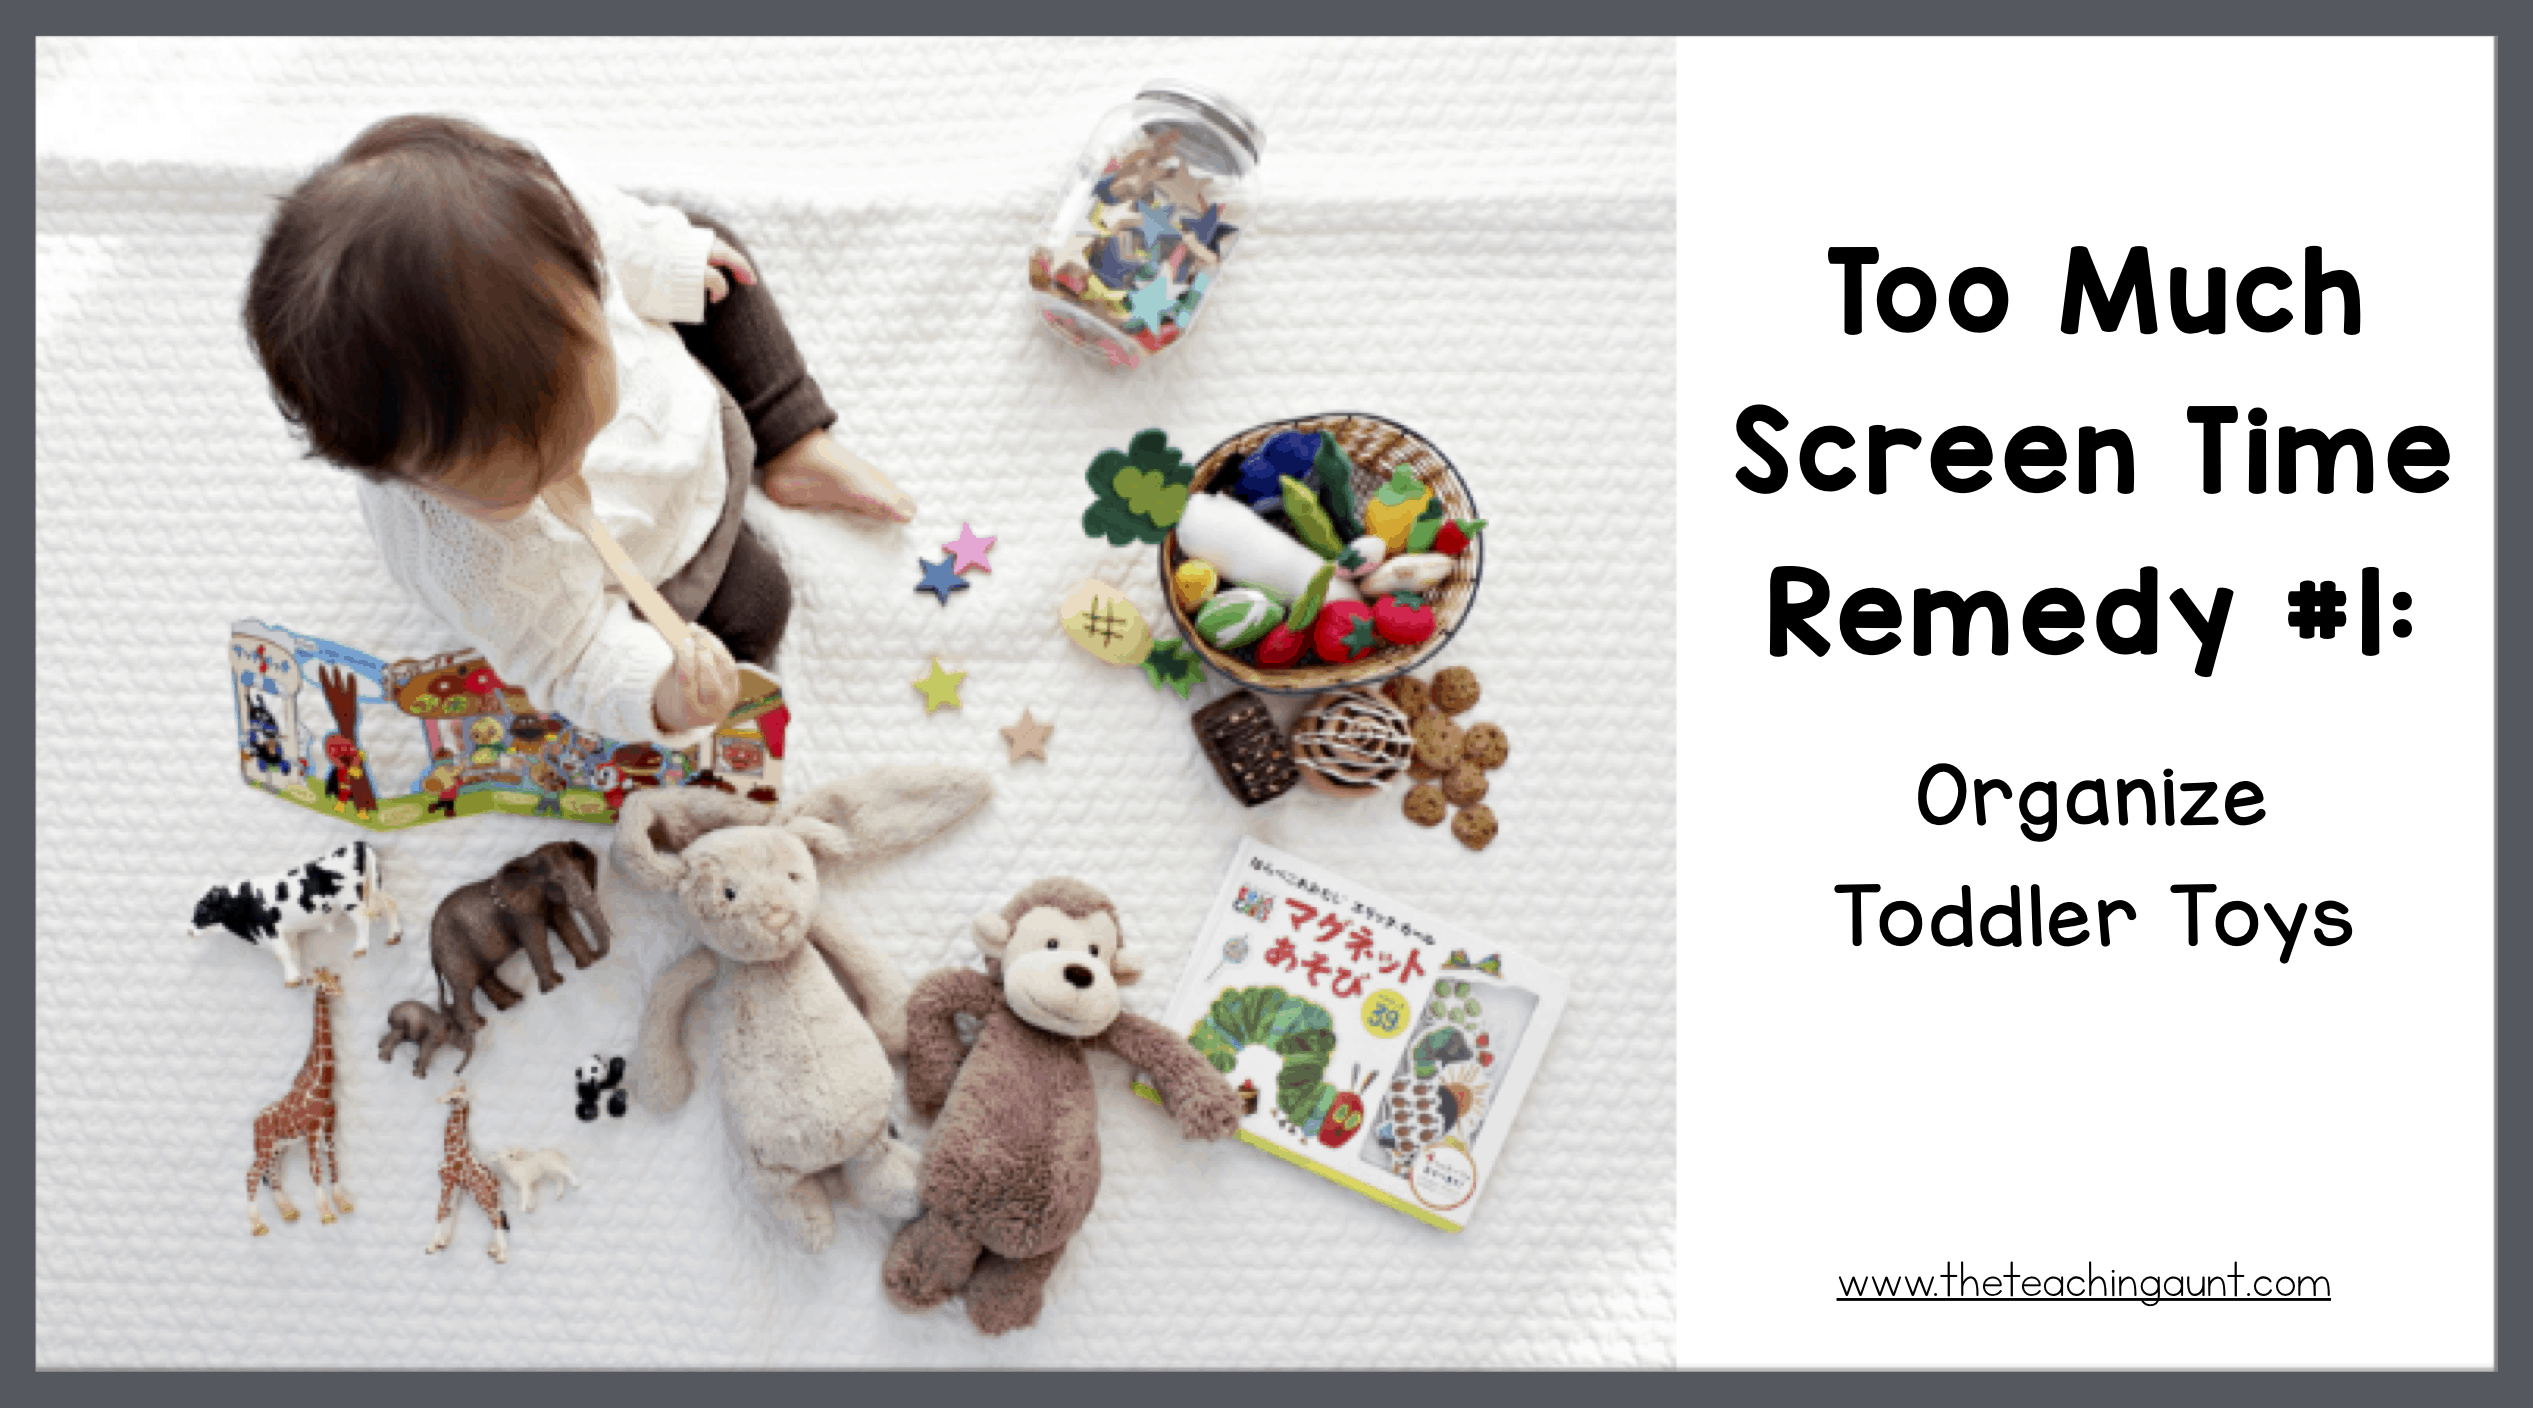 Too Much Screen Time Remedy #1 Organizing Toddler Toys